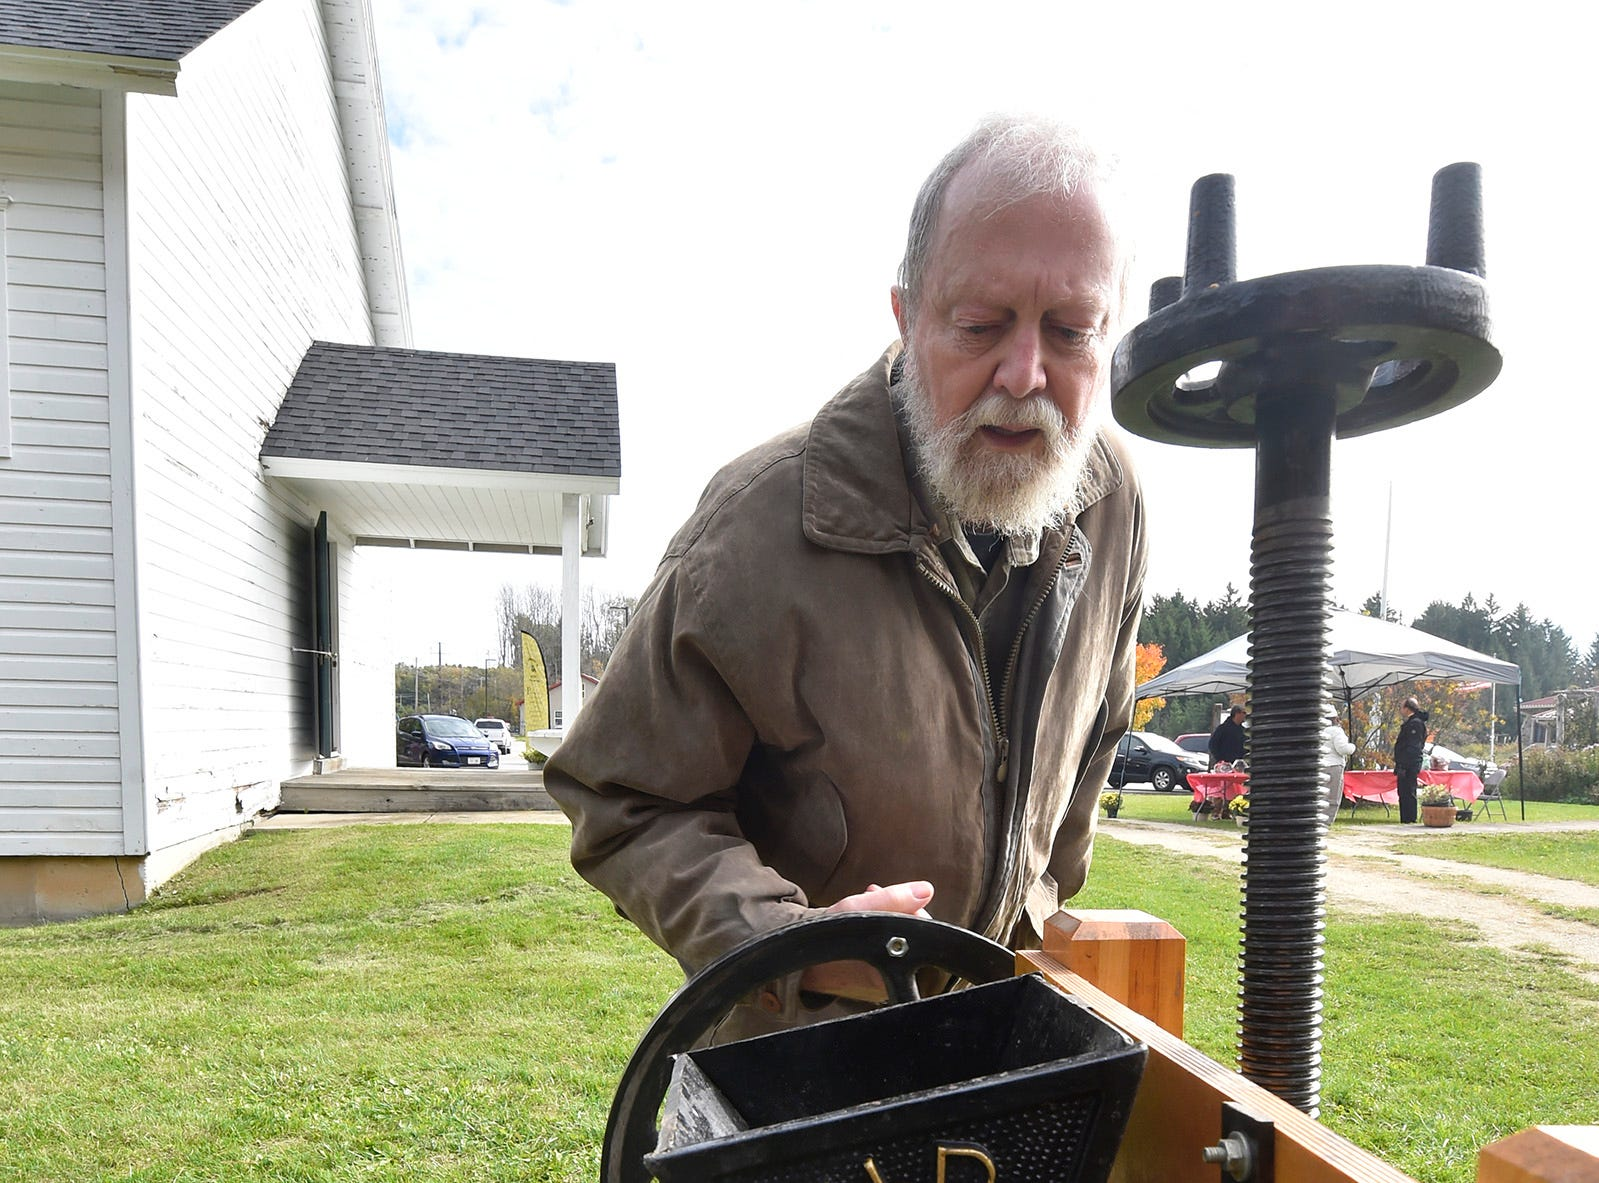 George Zachariasen of Jacksonport learns how to operate an apple press that grinds apples into chunks and pressed into cider during Apple Day at Heritage Village at Big Creek in Sturgeon Bay on Oct. 13, 2018. Tina M. Gohr/USA TODAY NETWORK-Wisconsin